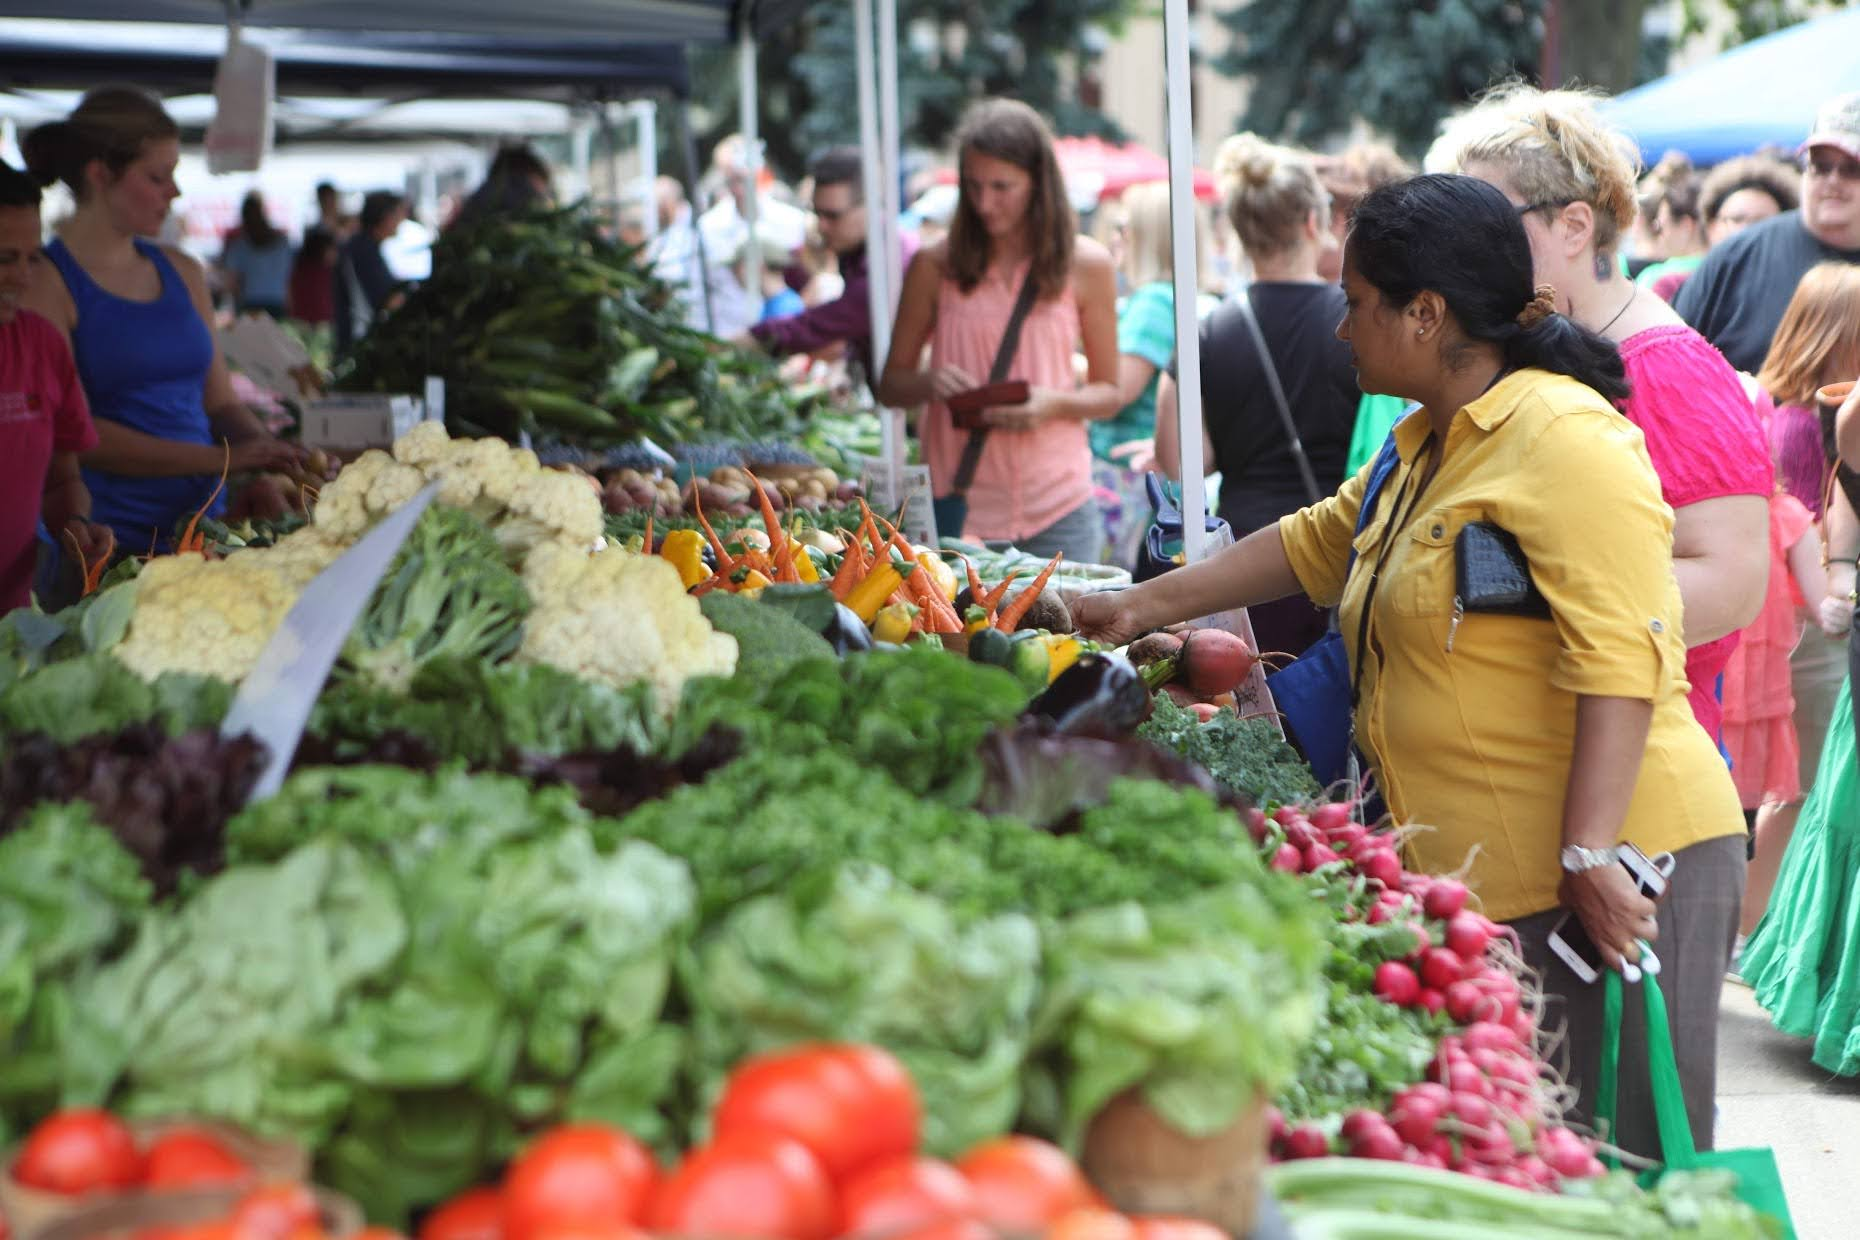 Shoppers visiting farmers markets during National Farmers Market Week can expect special events and celebrations